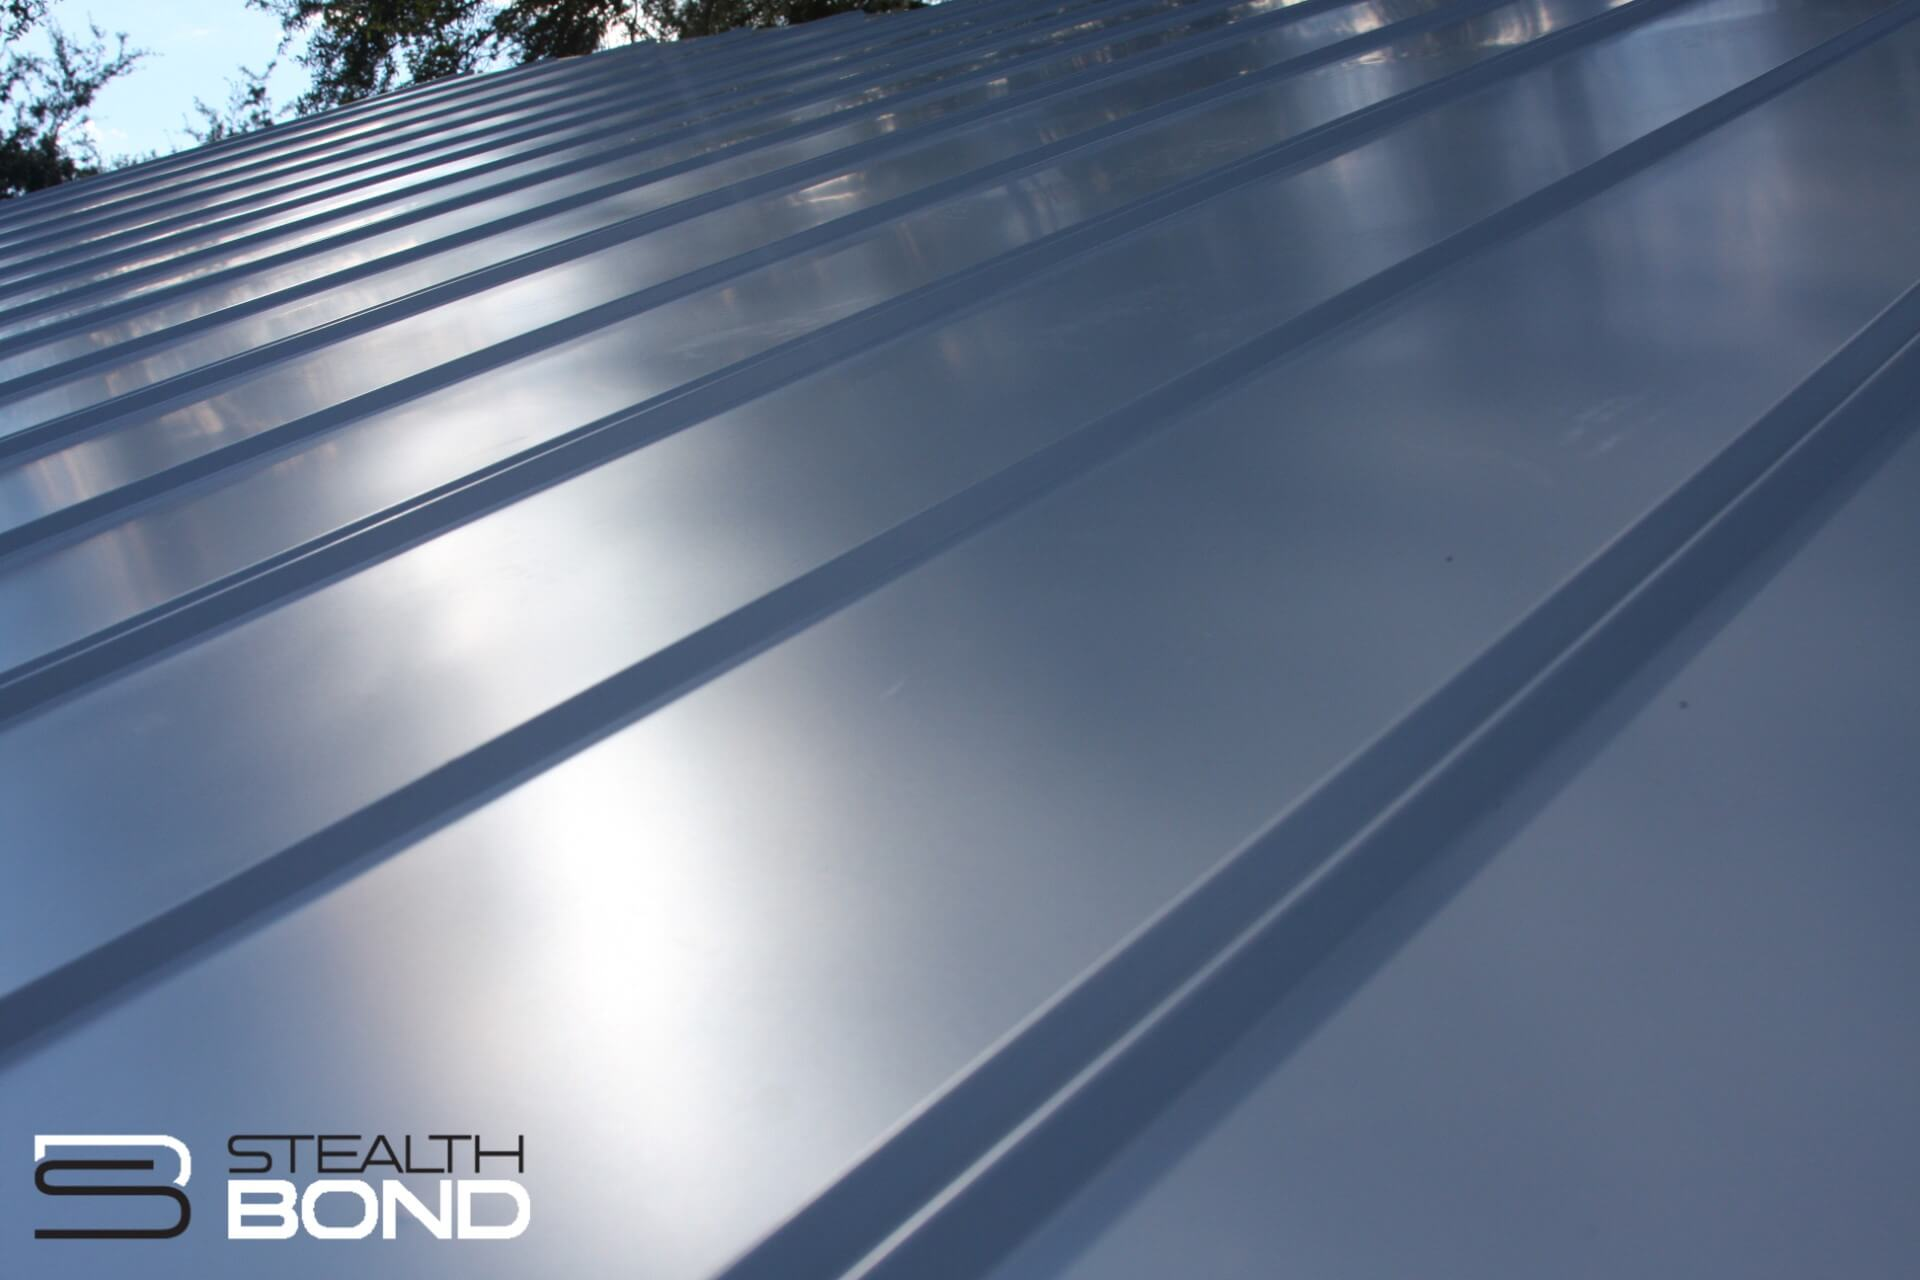 Metal Roofing and the New Industry Standard